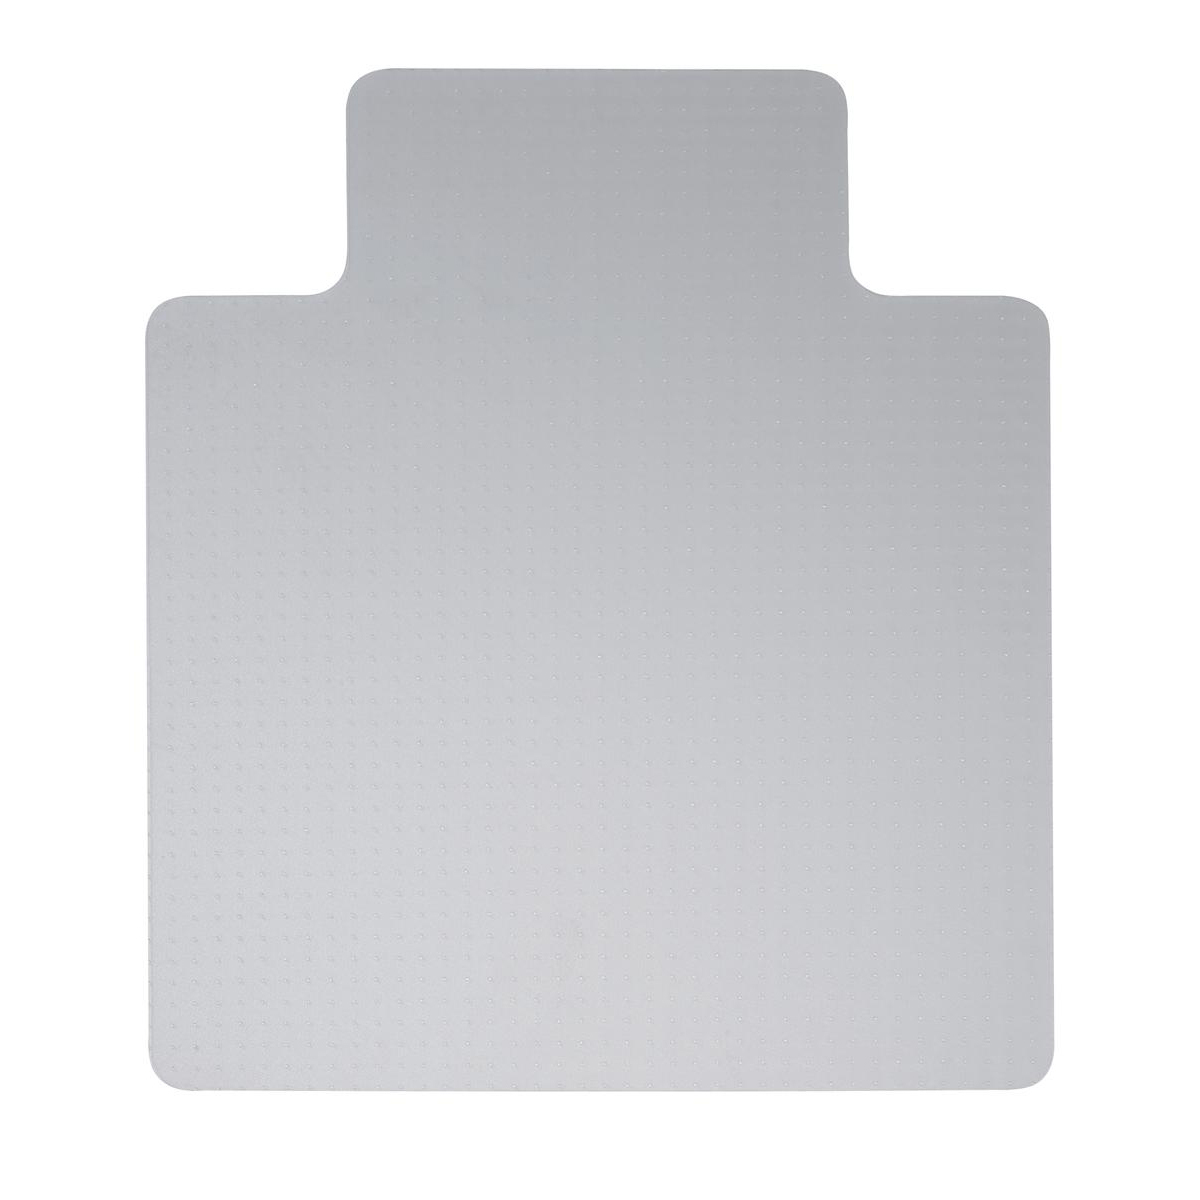 Chair mat 5 Star Office Chair Mat For Hard Floors Polycarbonate Chair Mat Lipped 890x1190mm Clear